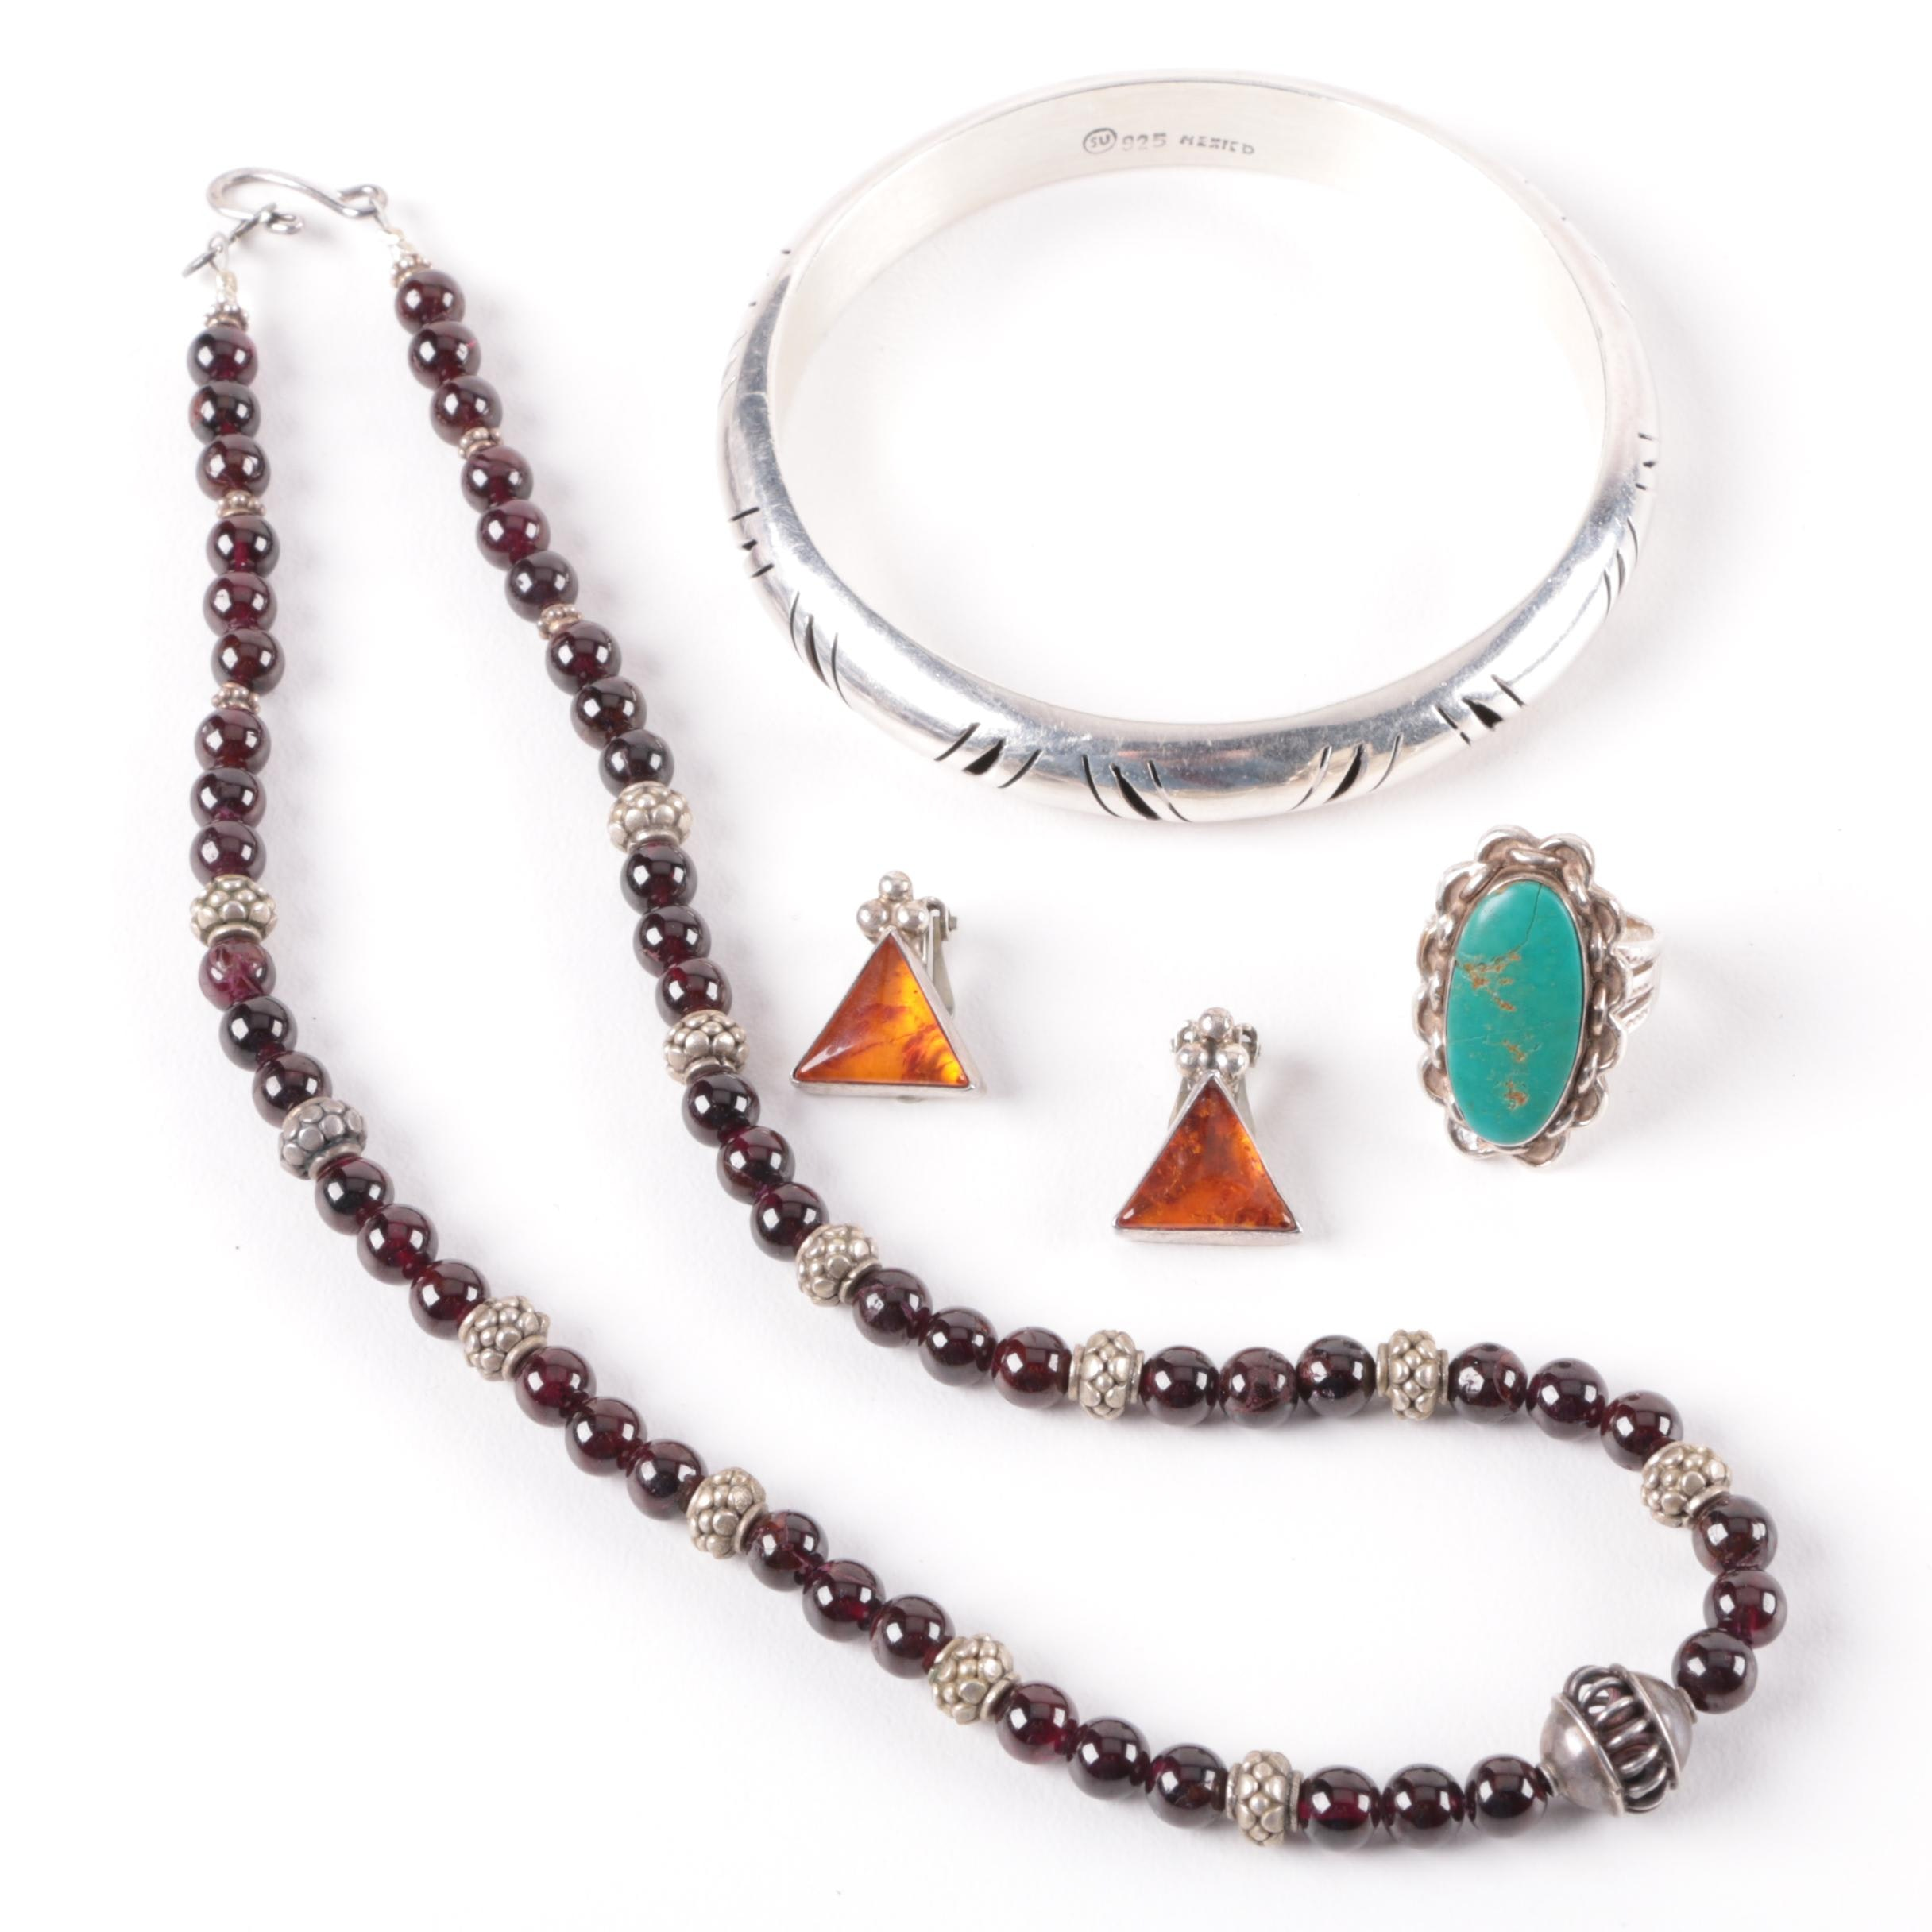 Assortment of Southwestern Style Garnet, Amber and Turquoise Jewelry